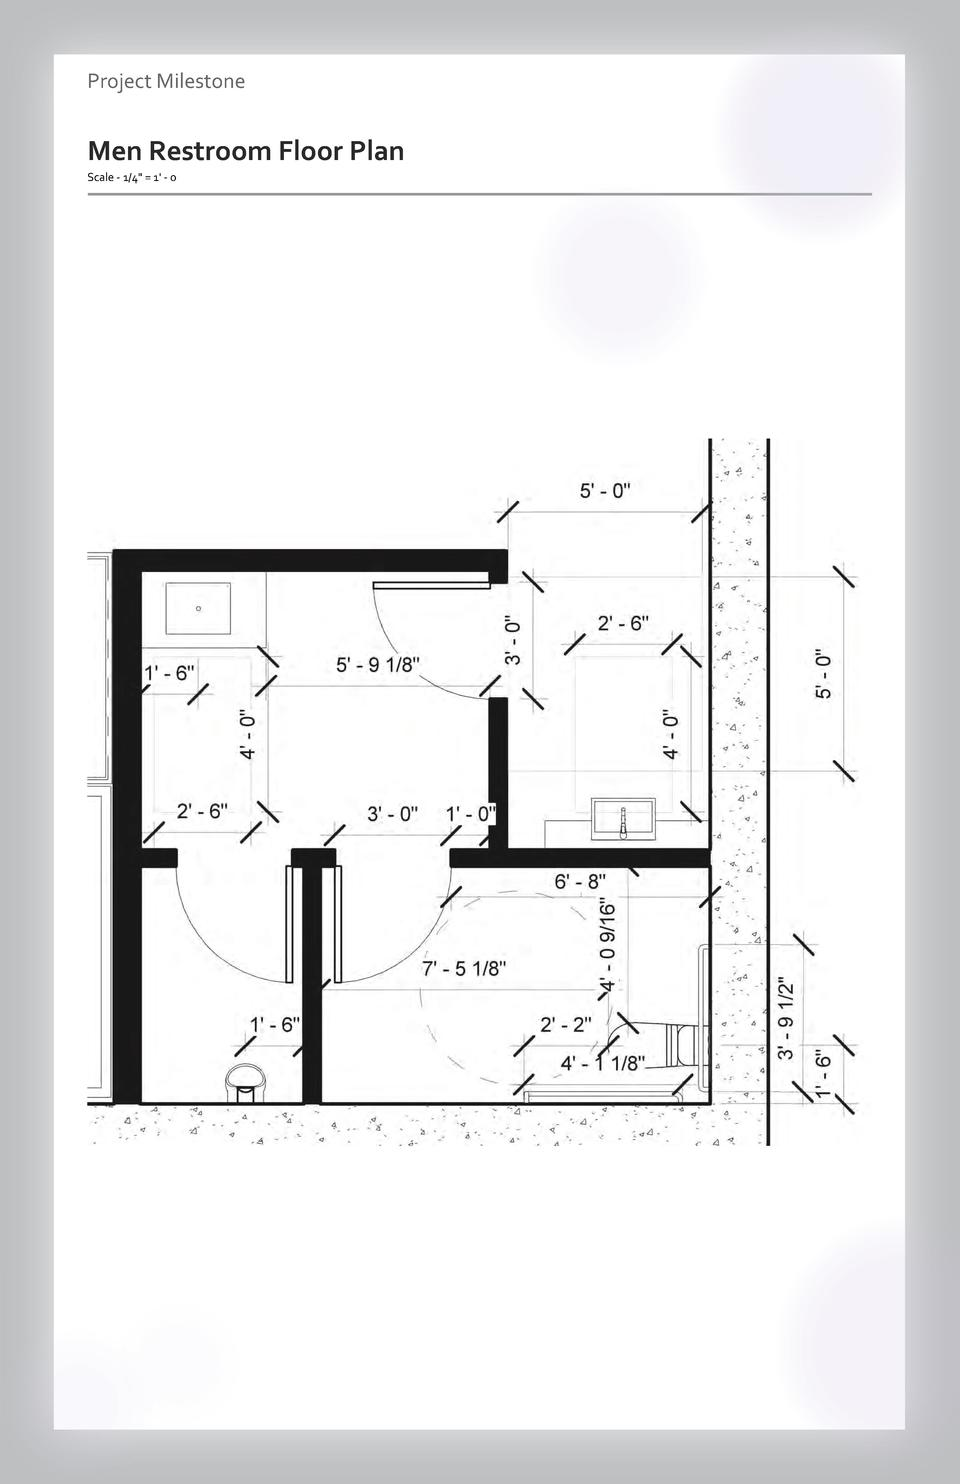 Case study Project Milestone - Aesthetics  Commercial Men Restroom Space Floor Wayfinding Plan Westfield Scale - 1 4 Valle...